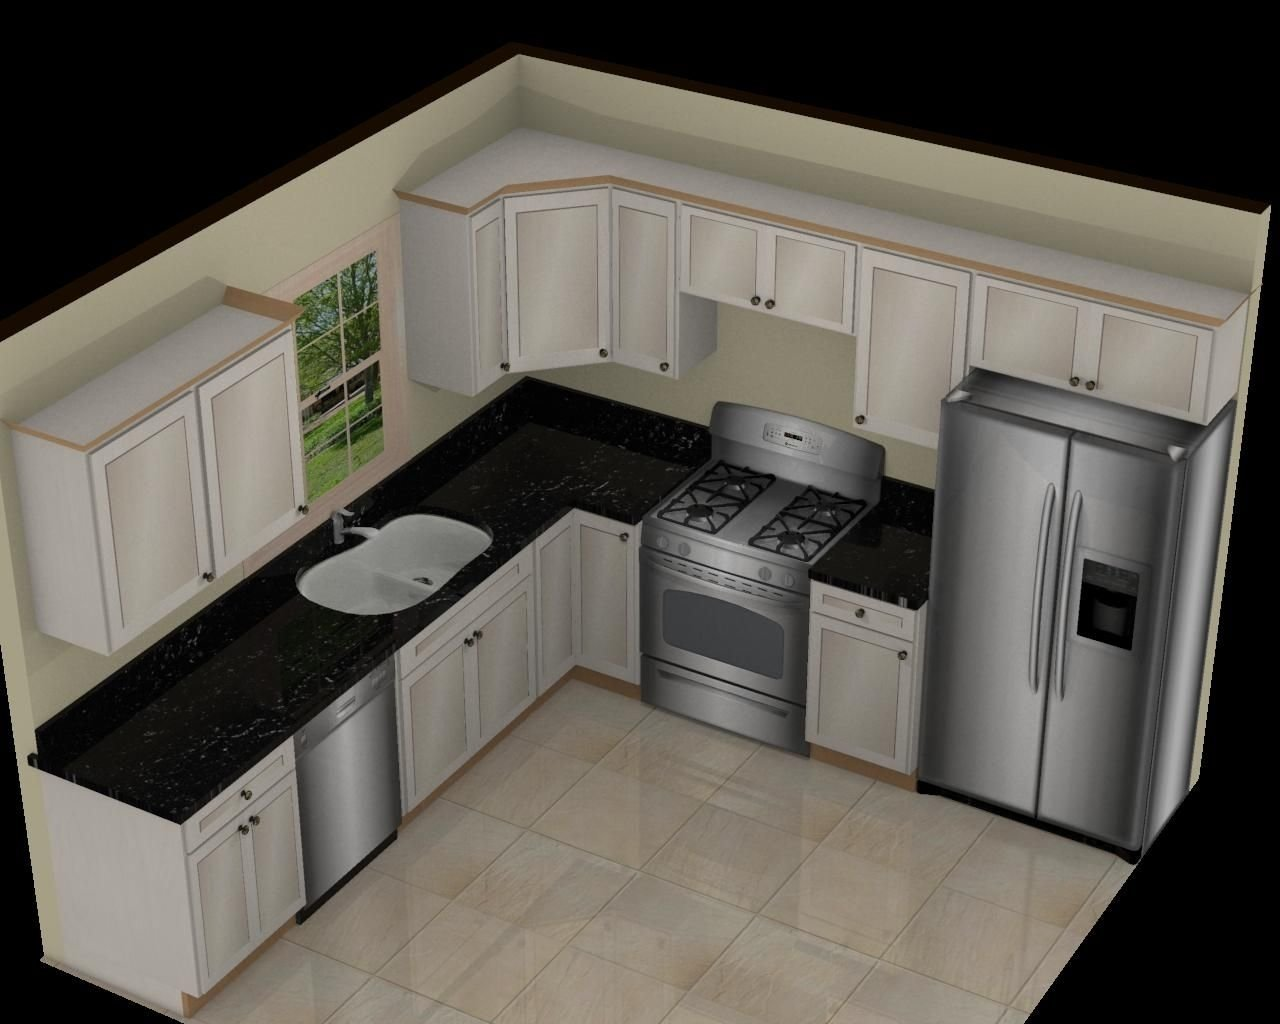 10 Awesome Small Kitchen Design Layout Ideas similar to original design get rid of window long pantry add